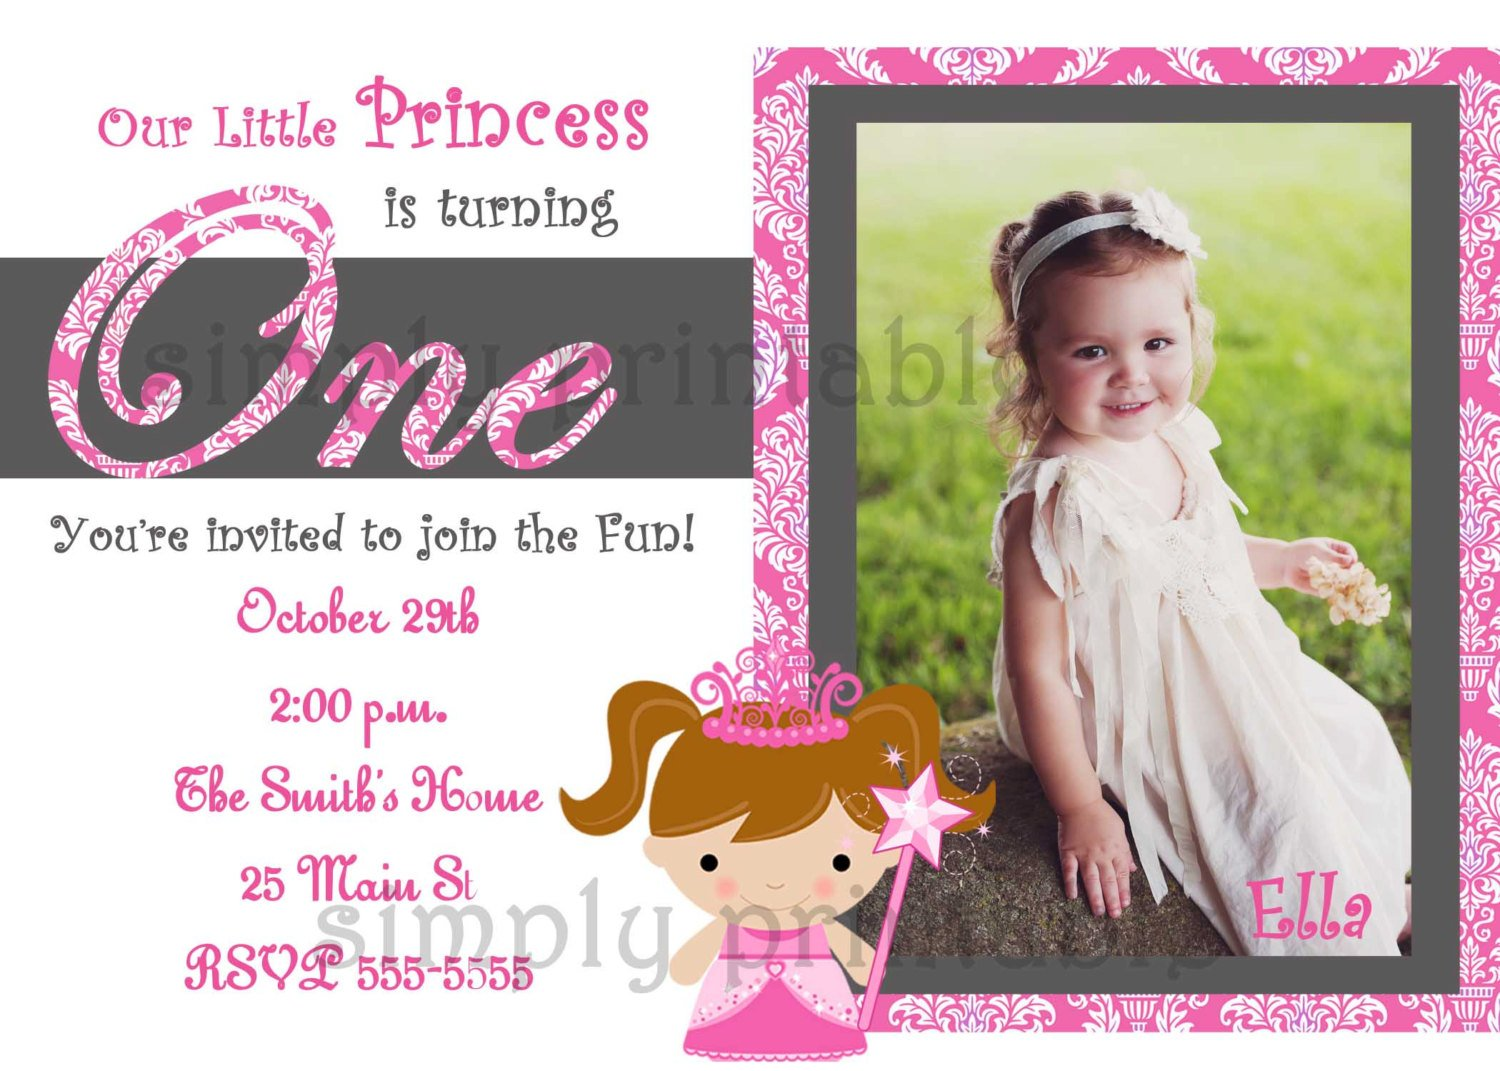 1st birthday party invitations template for girl drevio princess 1st birthday party invitations girl stopboris Image collections